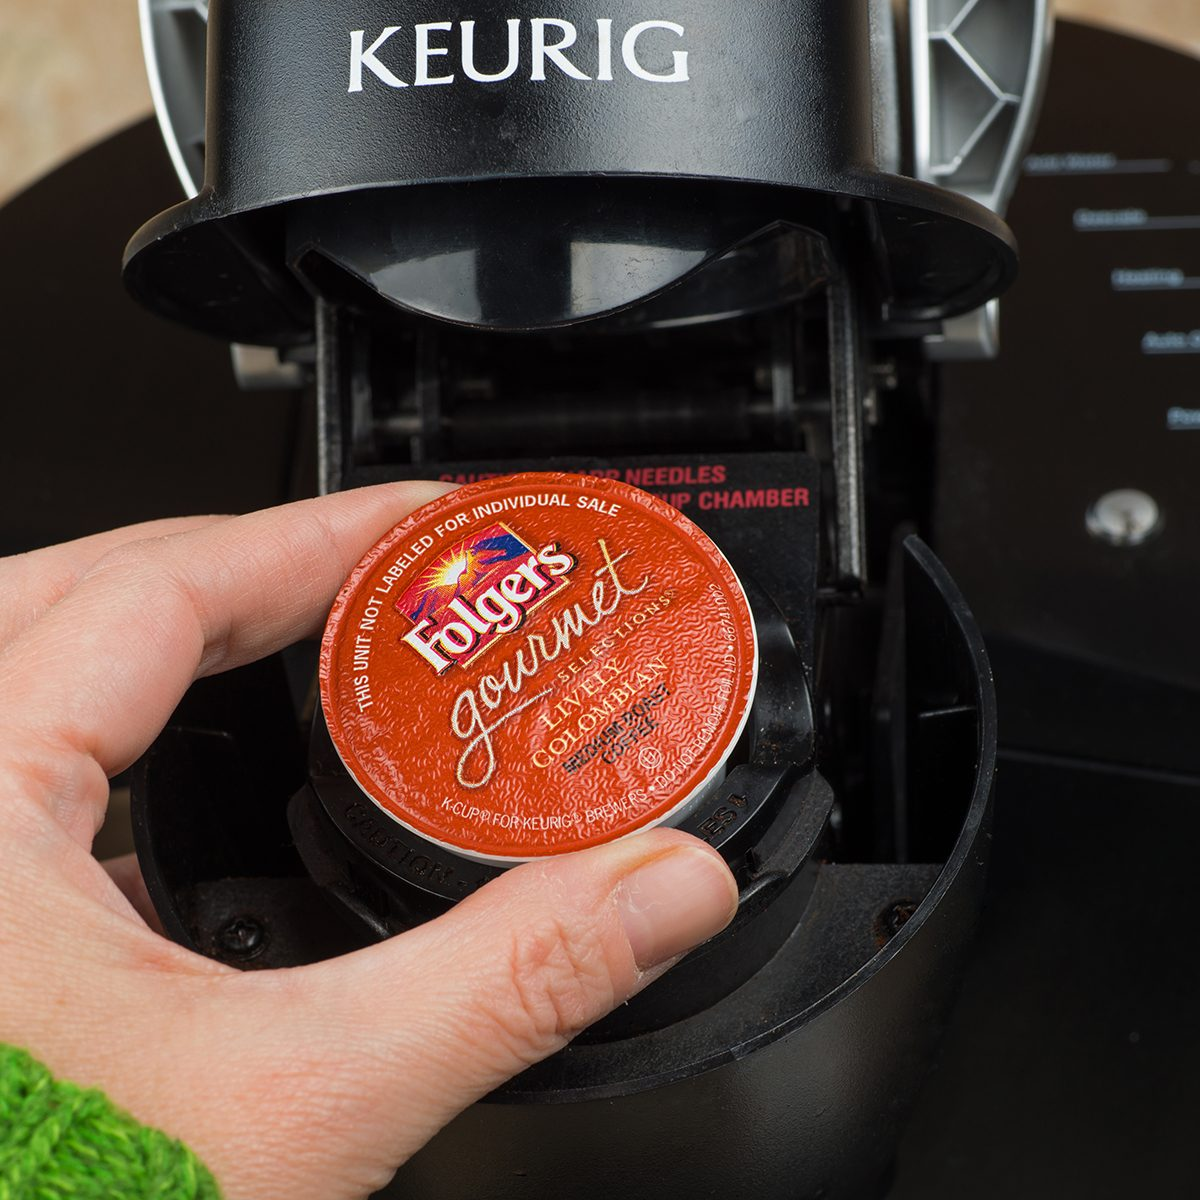 Close-up of woman inserting single-serve K-cup Foldger's coffee into a Keurig coffee maker.